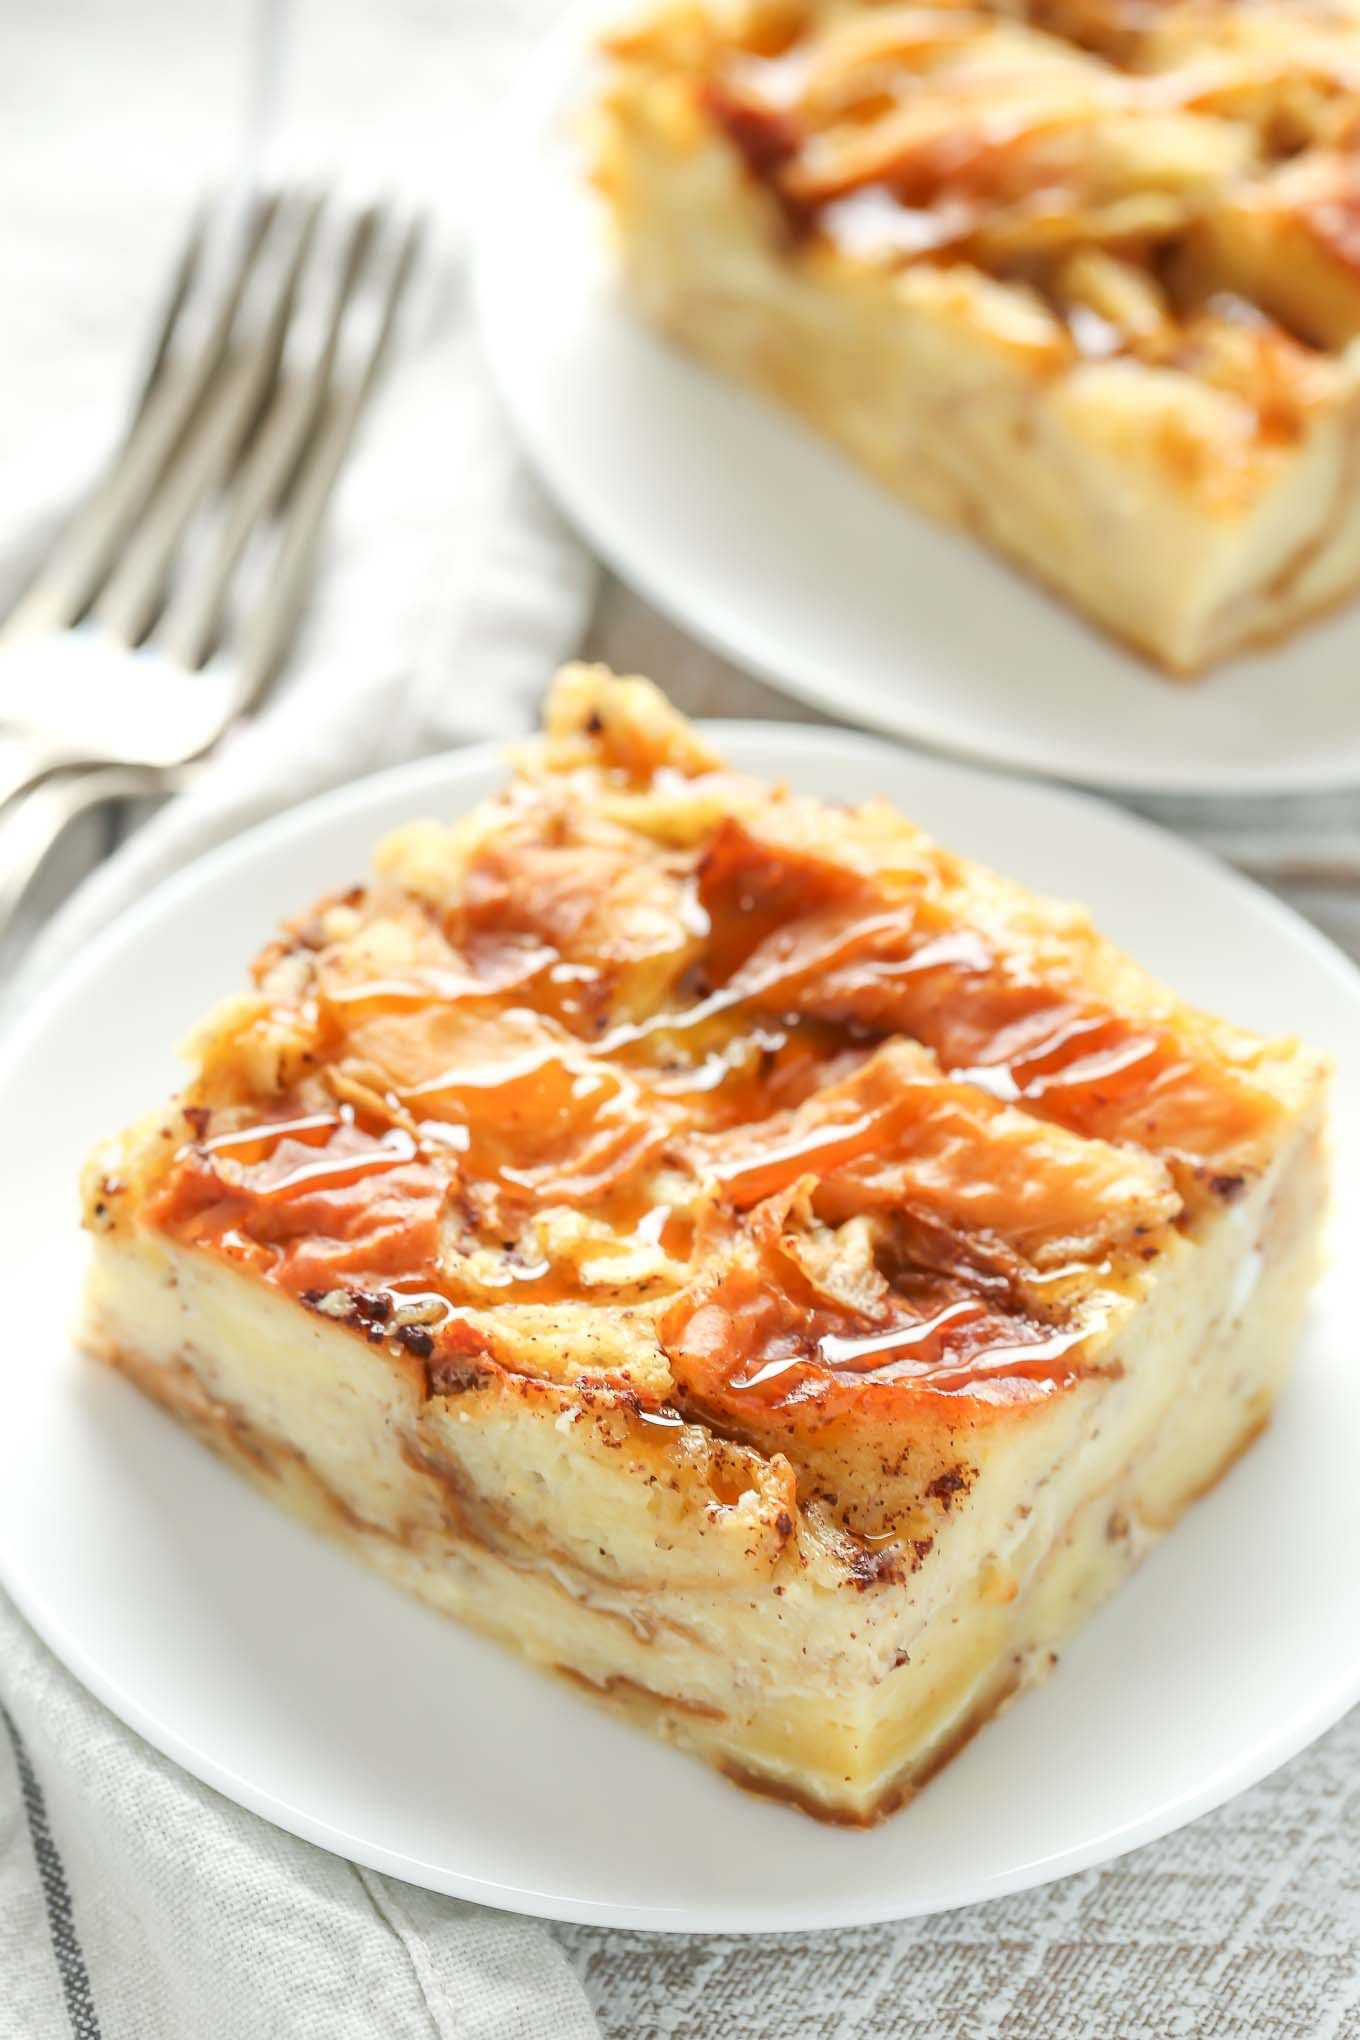 This bread pudding recipe is easy to make with just a few simple this bread pudding recipe is easy to make with just a few simple ingredients this forumfinder Images